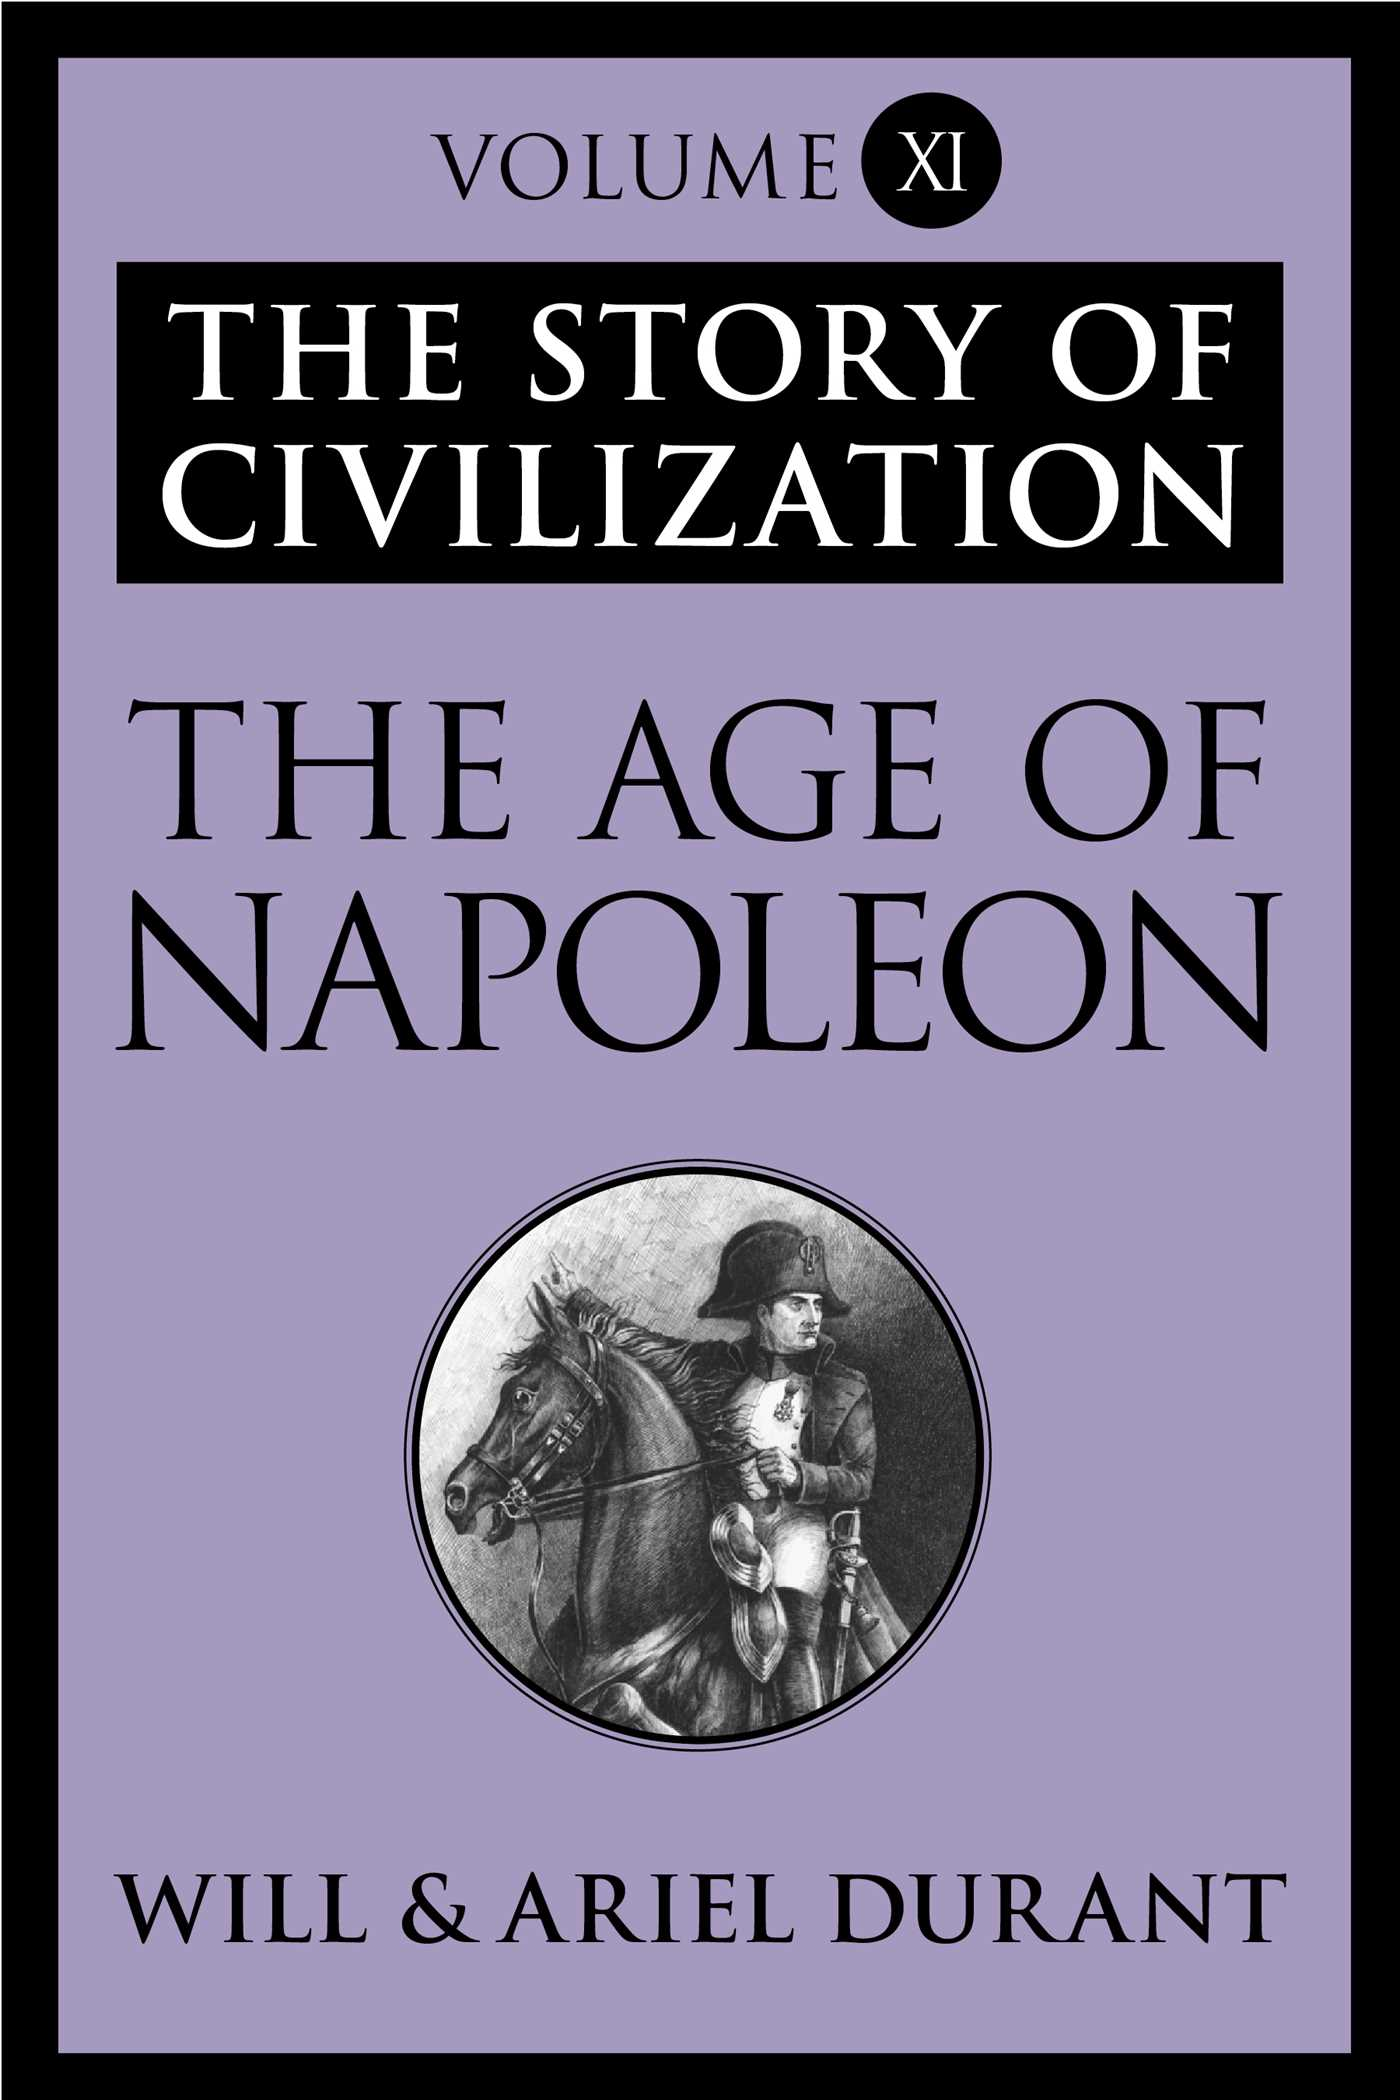 Book Cover Image (jpg): The Age of Napoleon